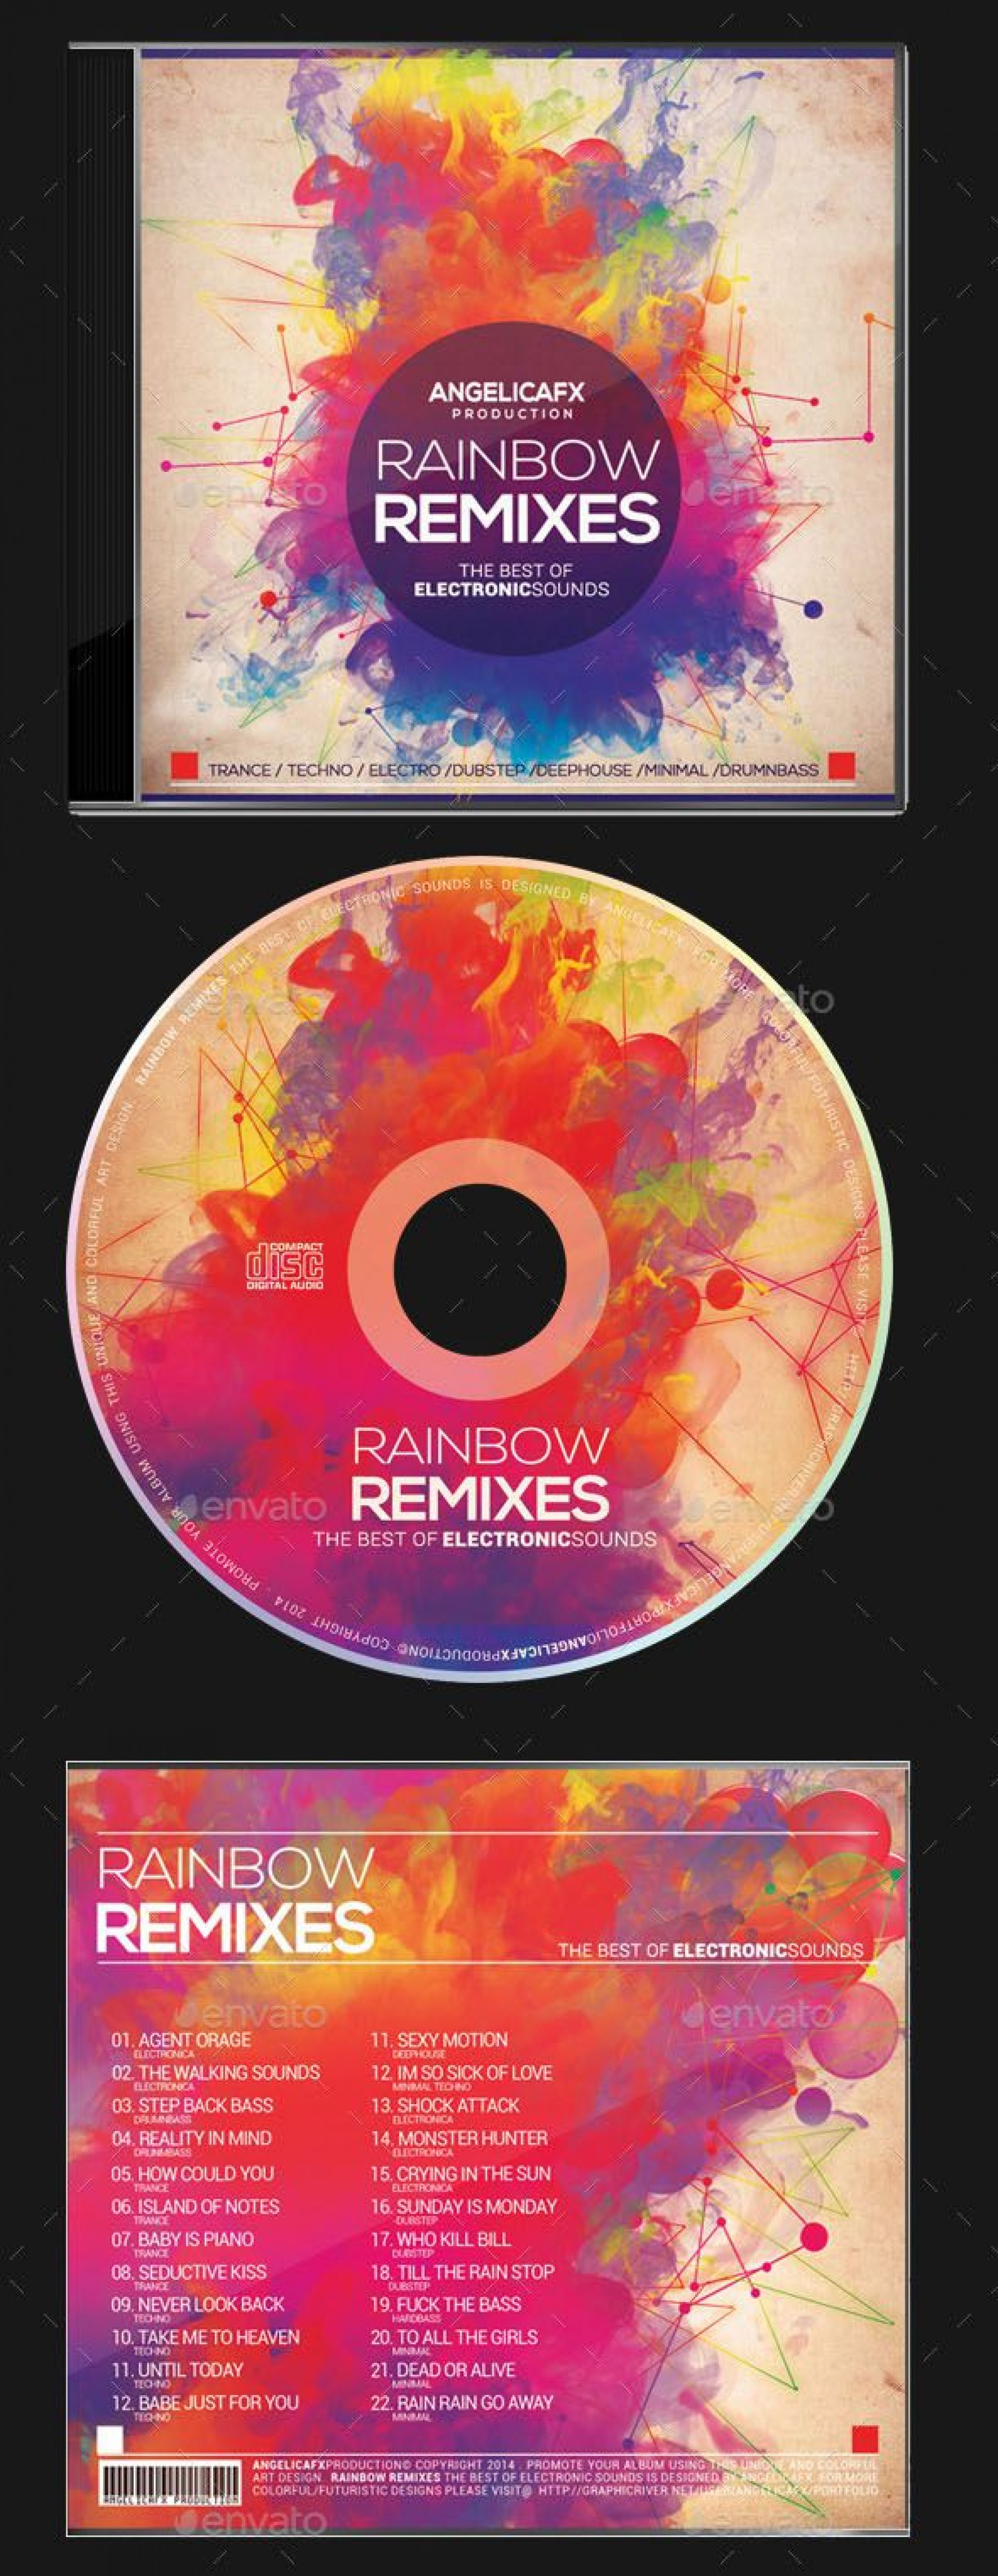 002 Unforgettable Free Cd Cover Design Template Photoshop Inspiration  Label Psd Download1920